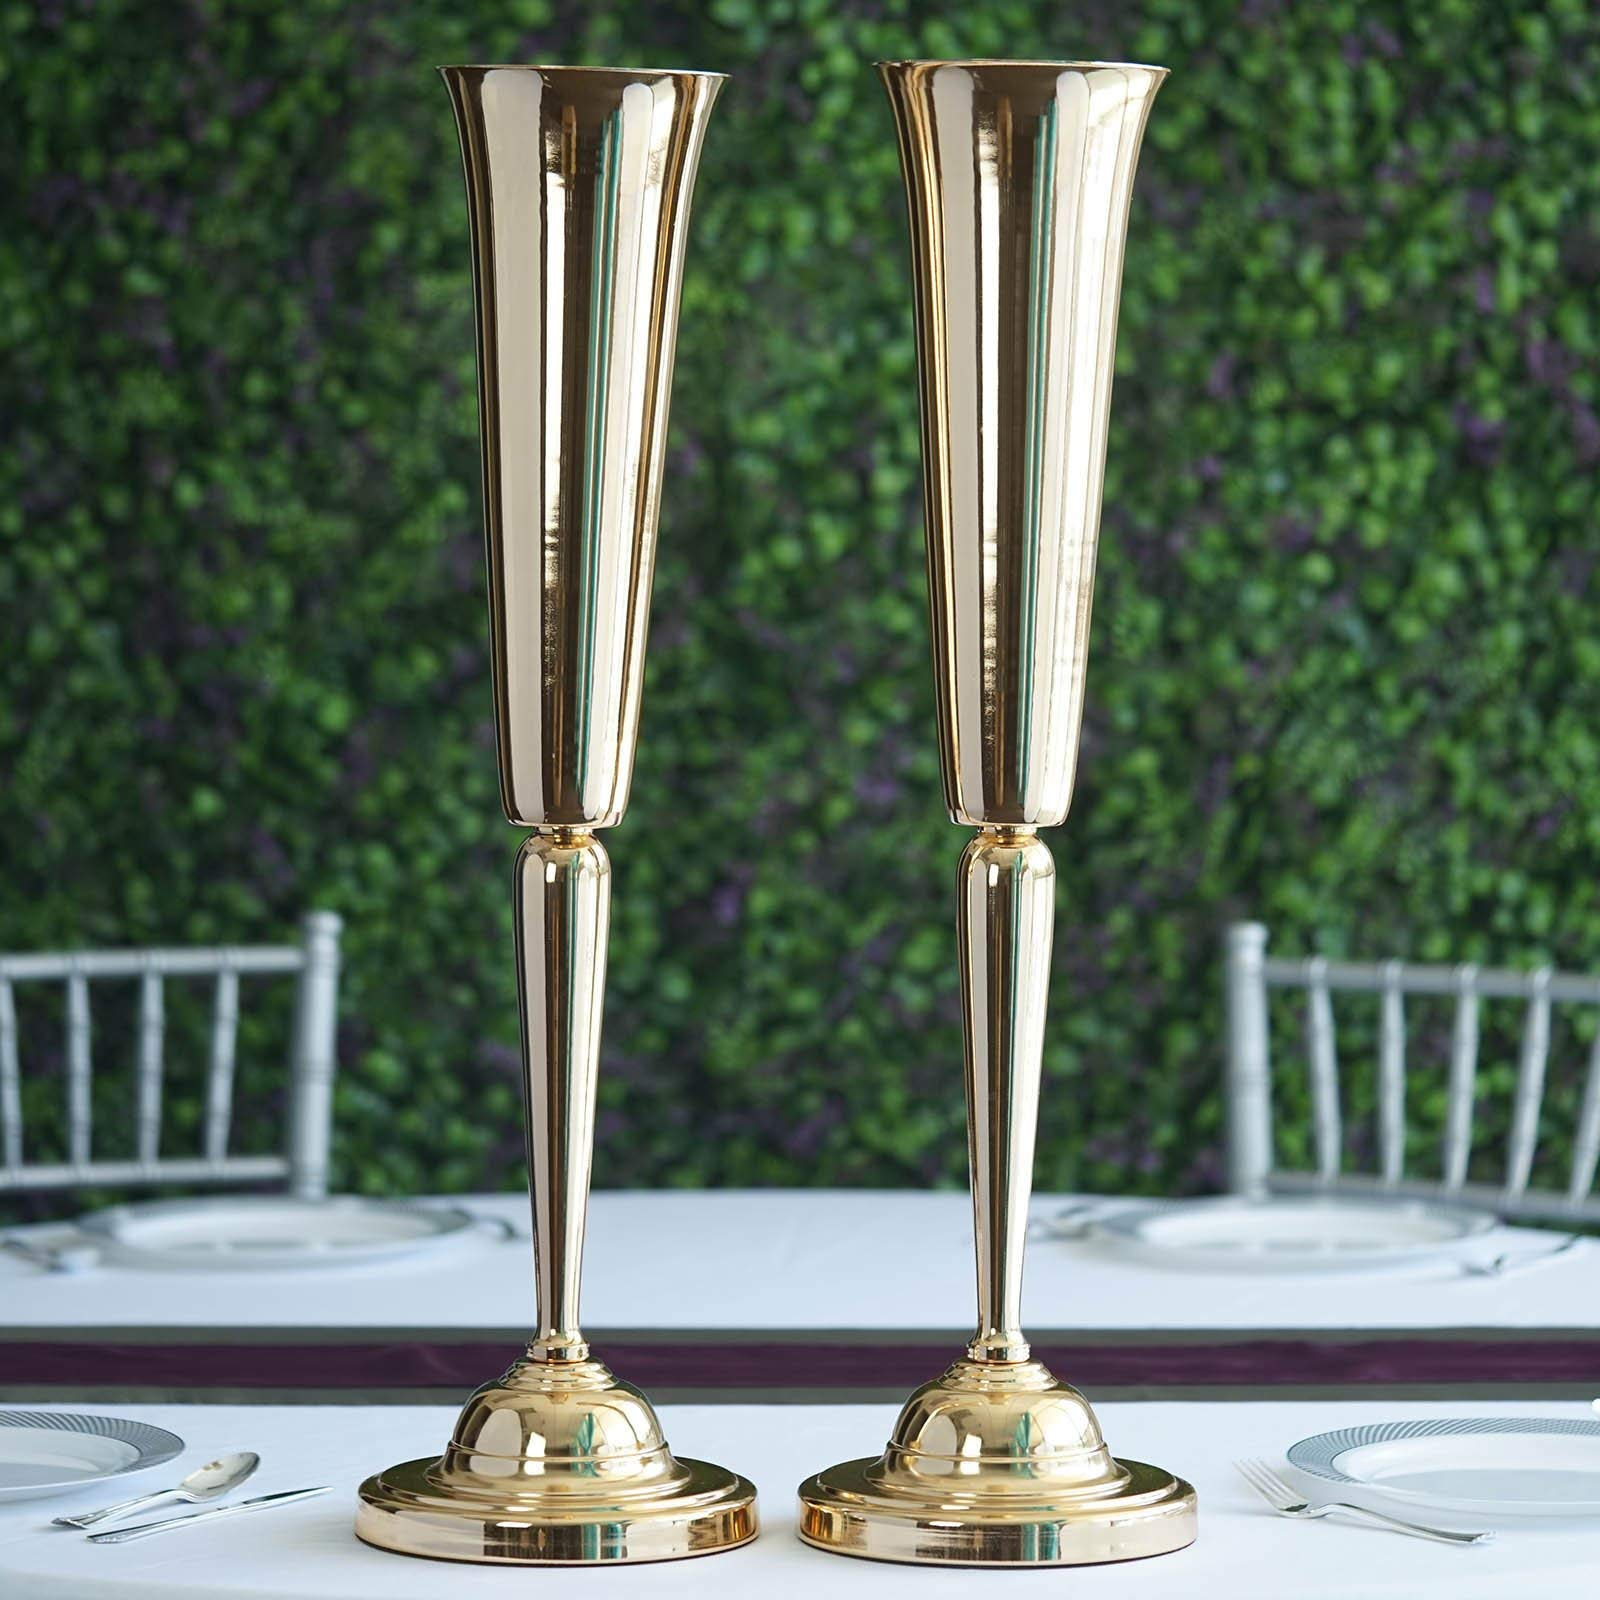 Efavormart 2 Pack 29'' Sleek Metallic Gold Reversible Votive Candle Holder Floral Vase Feather Ball Centerpiece Stand for Events